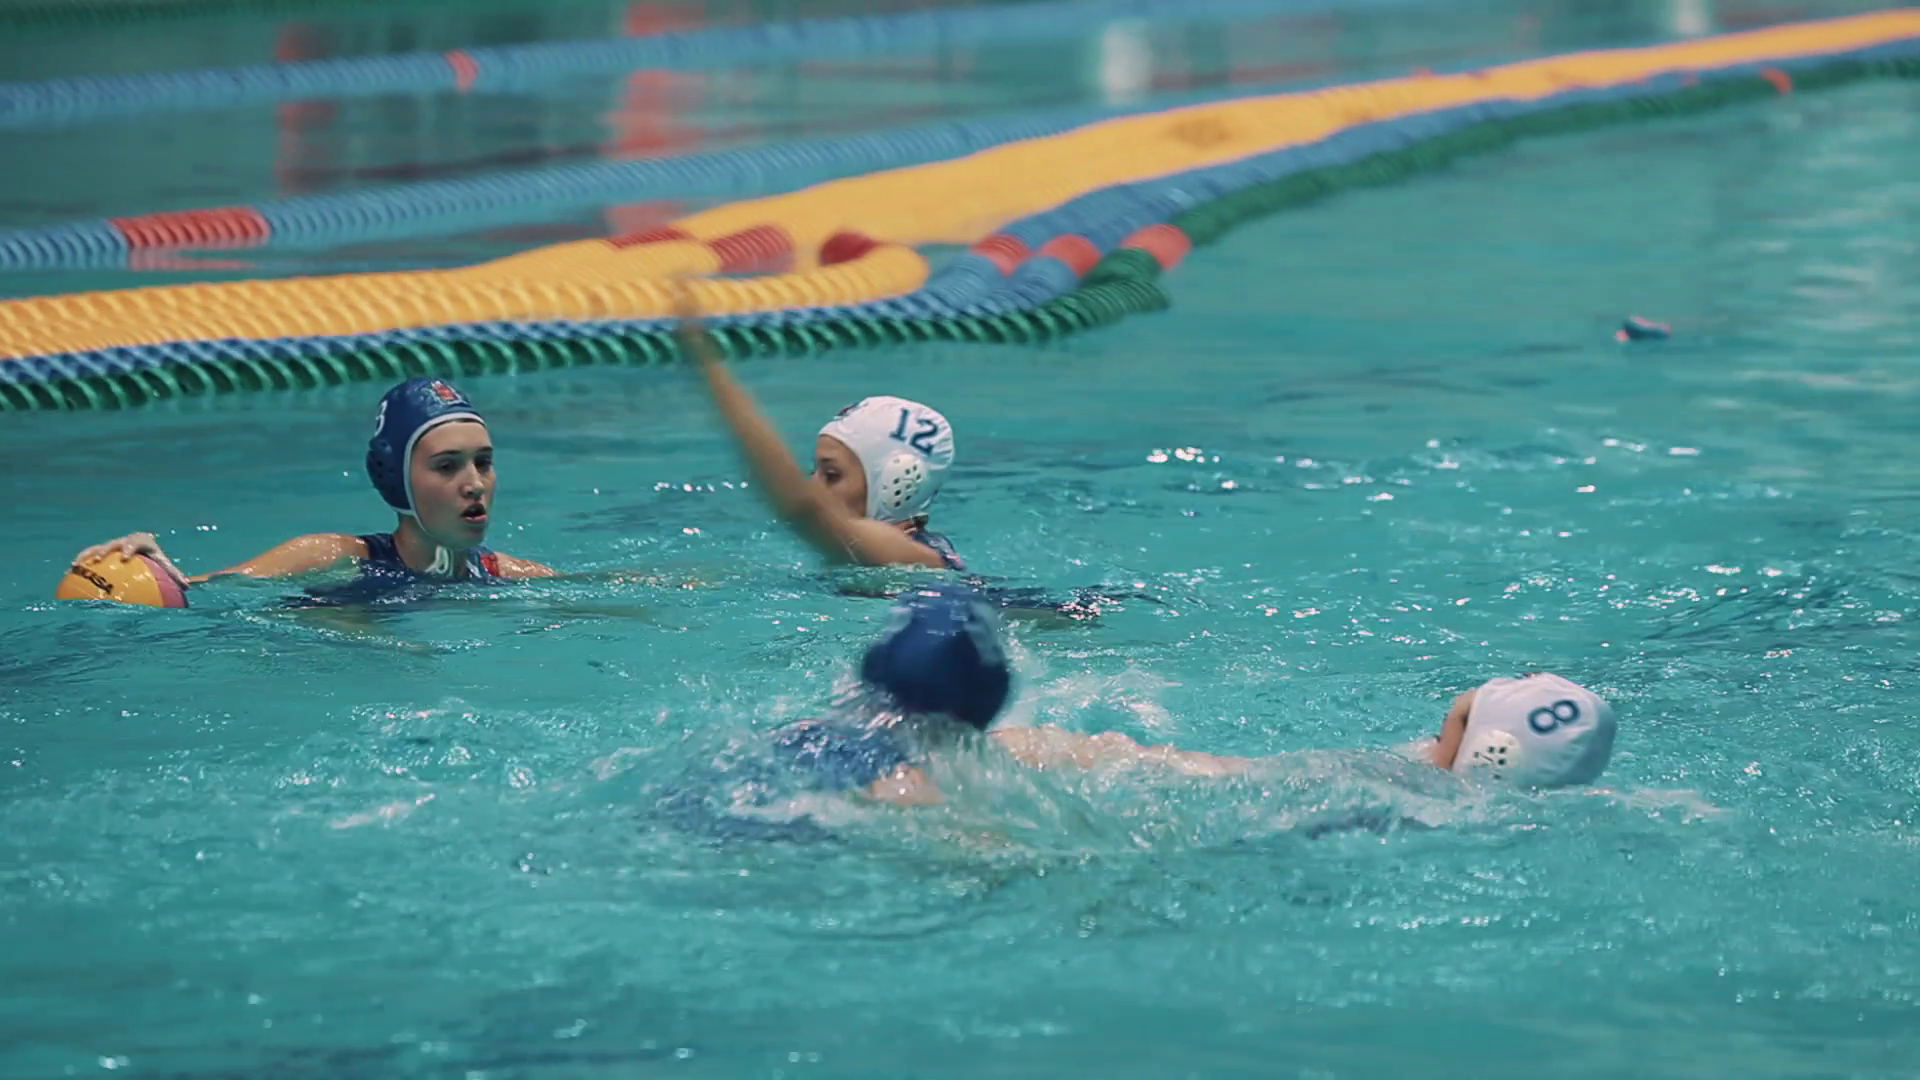 Water Polo Png Hd - Female Water Polo Player In White Cap Blocking Opponent In Blue Cap With Ball In Swimming Pool During Tense Game Stock Video Footage   Videoblocks, Transparent background PNG HD thumbnail